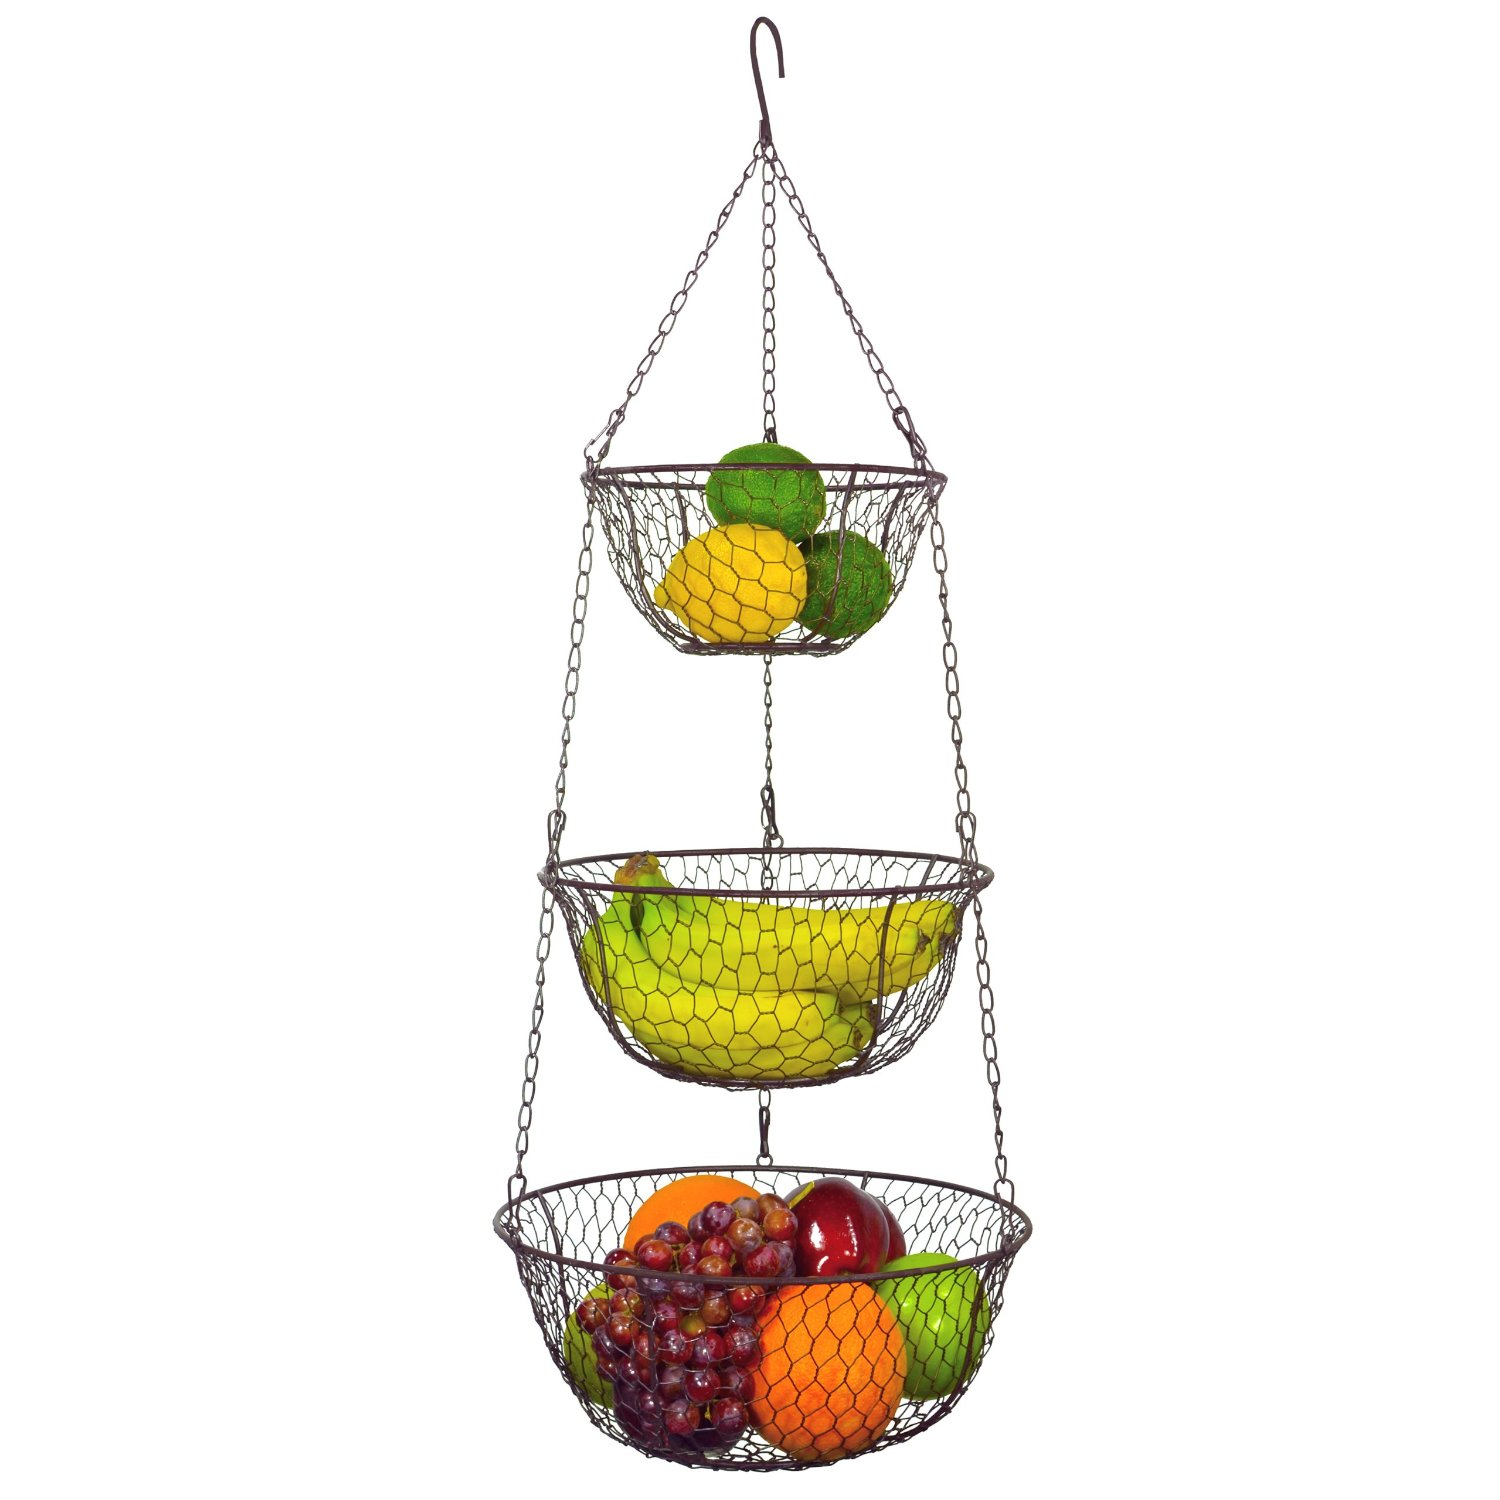 Elegant Our New Obsession Hanging Fruit Baskets Source · Fruit 20and 20vegetables  20basket